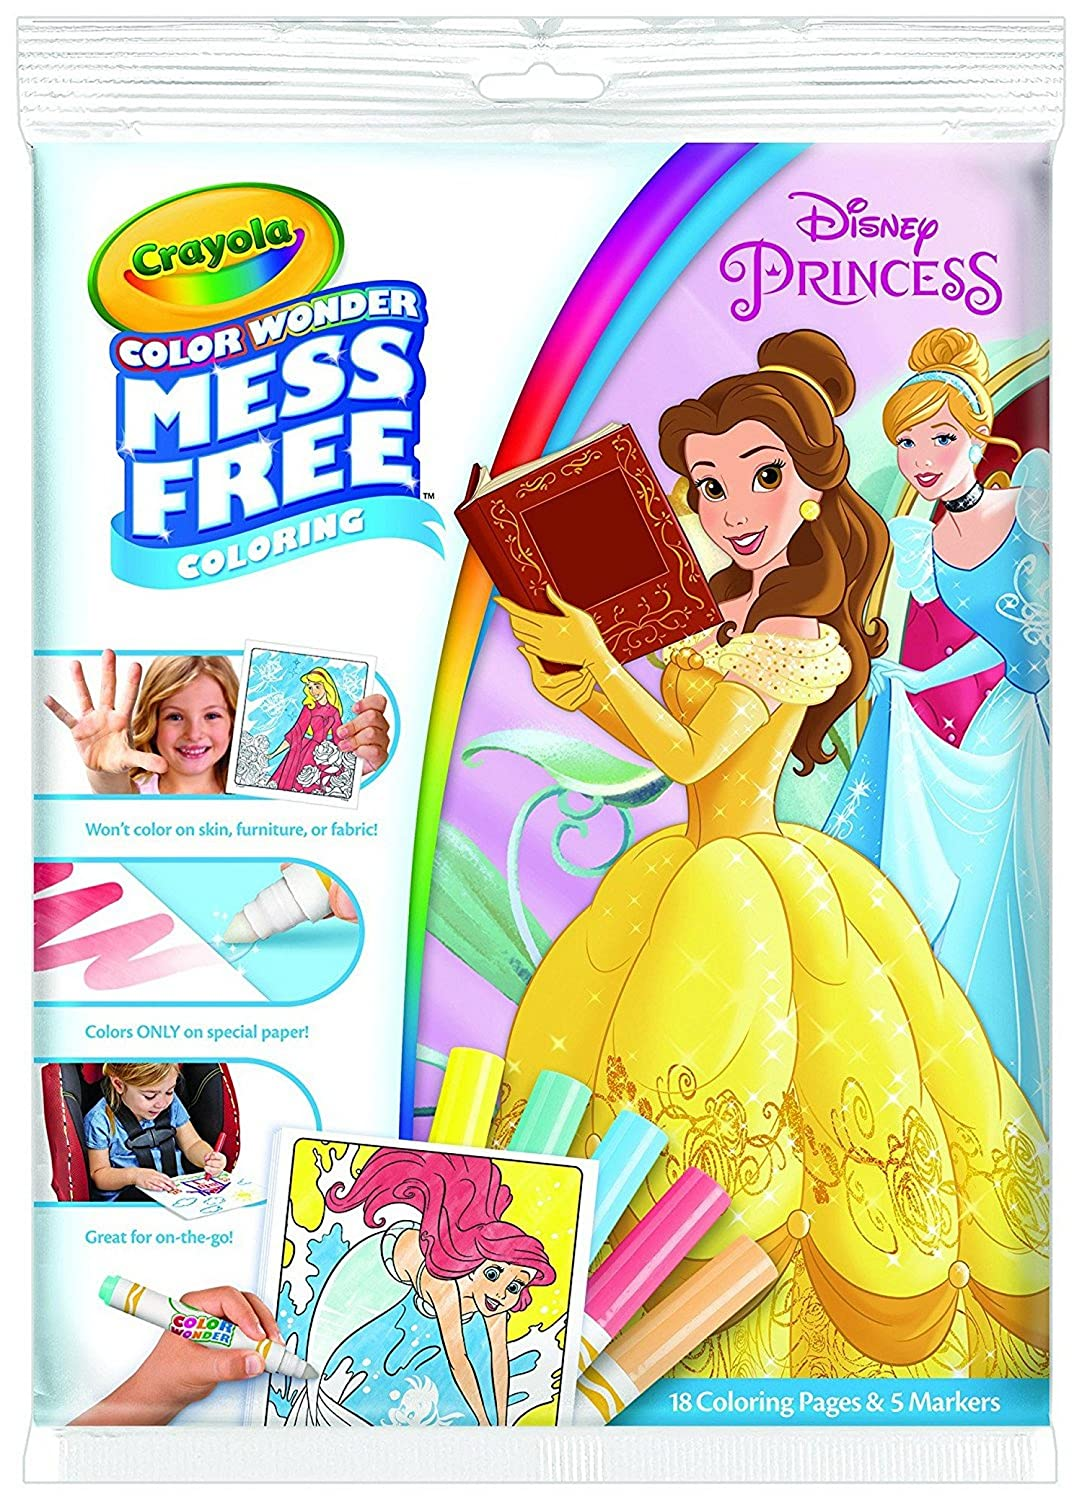 Crayola Color Wonder Mess Free Coloring, Disney Princess, 18 Coloring Pages and 5 Markers 75-2496